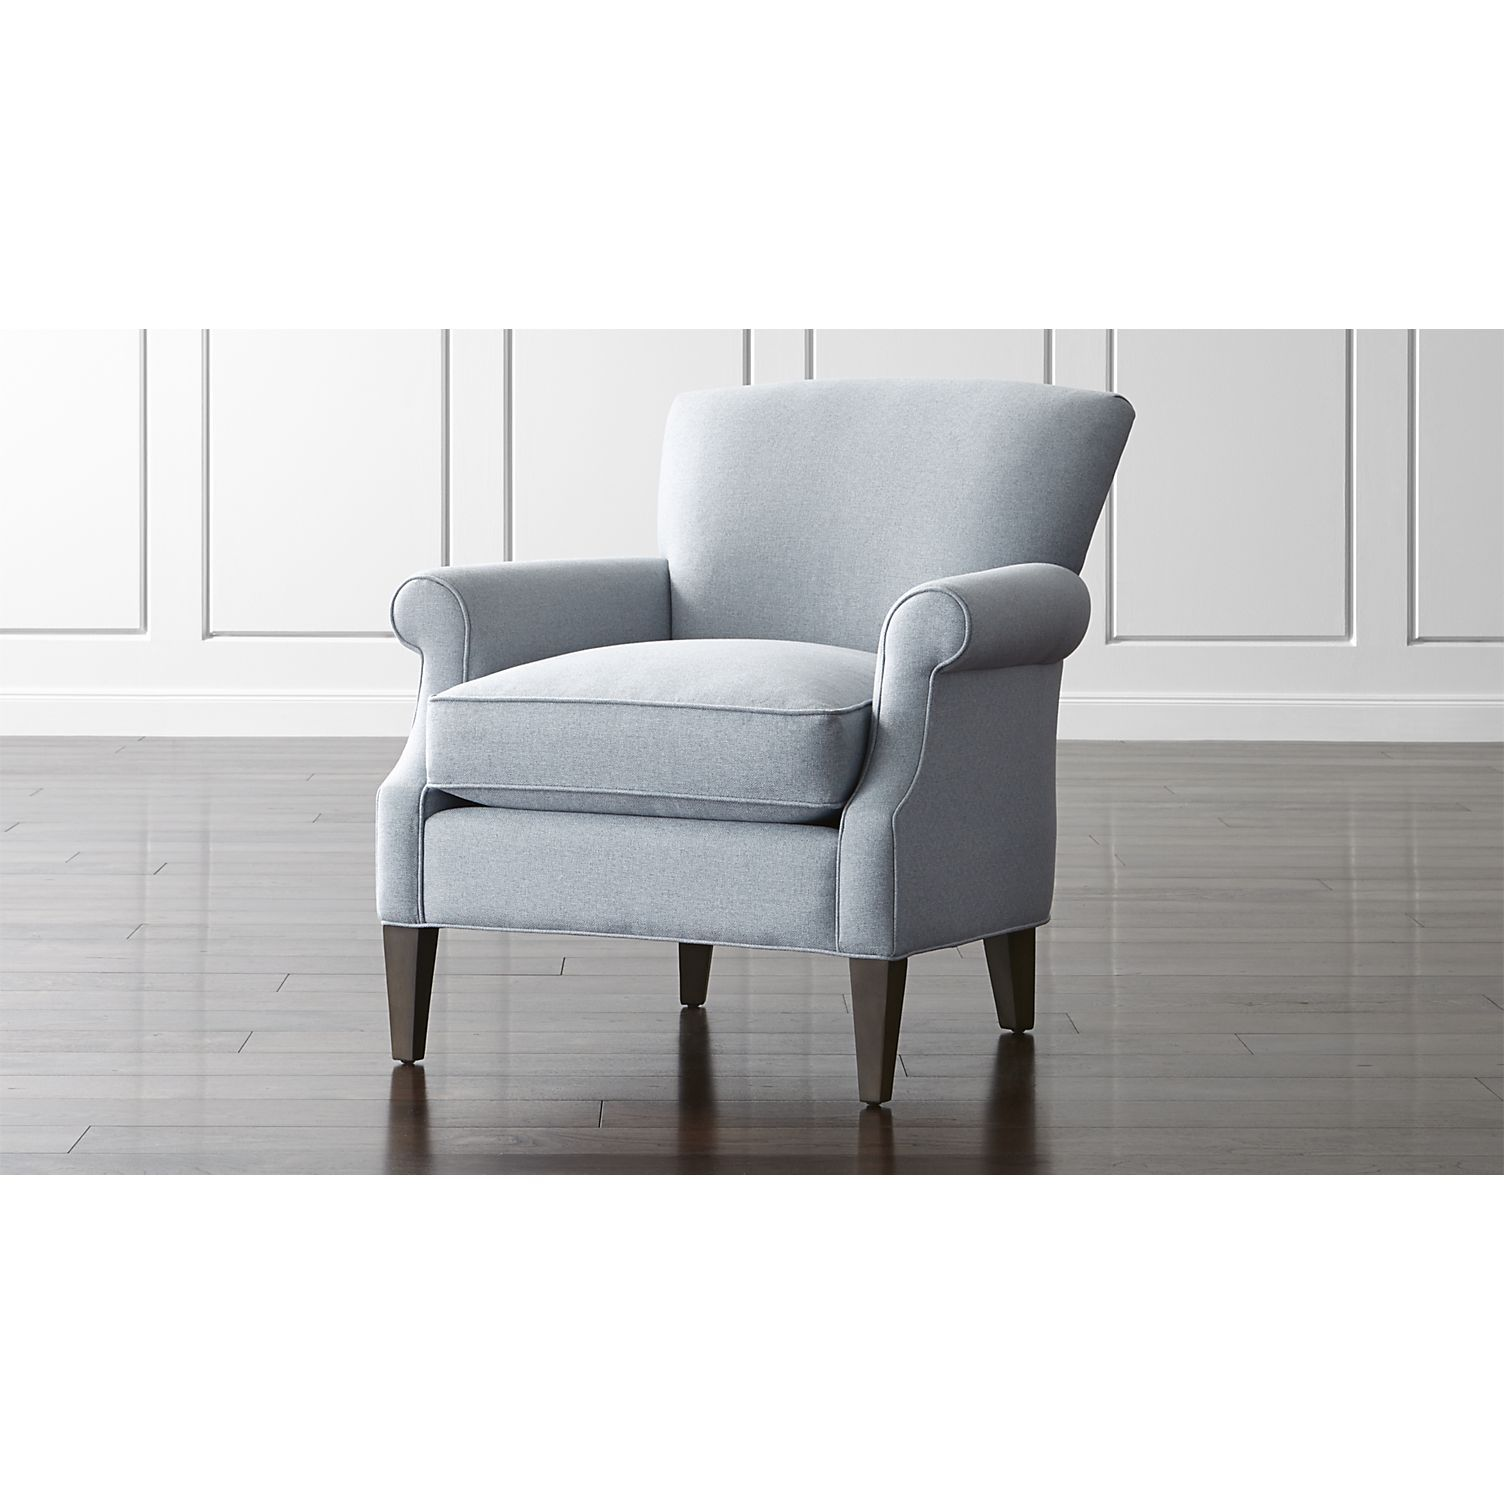 Shop Elyse Light Blue Accent Chair. Selfwelting detail